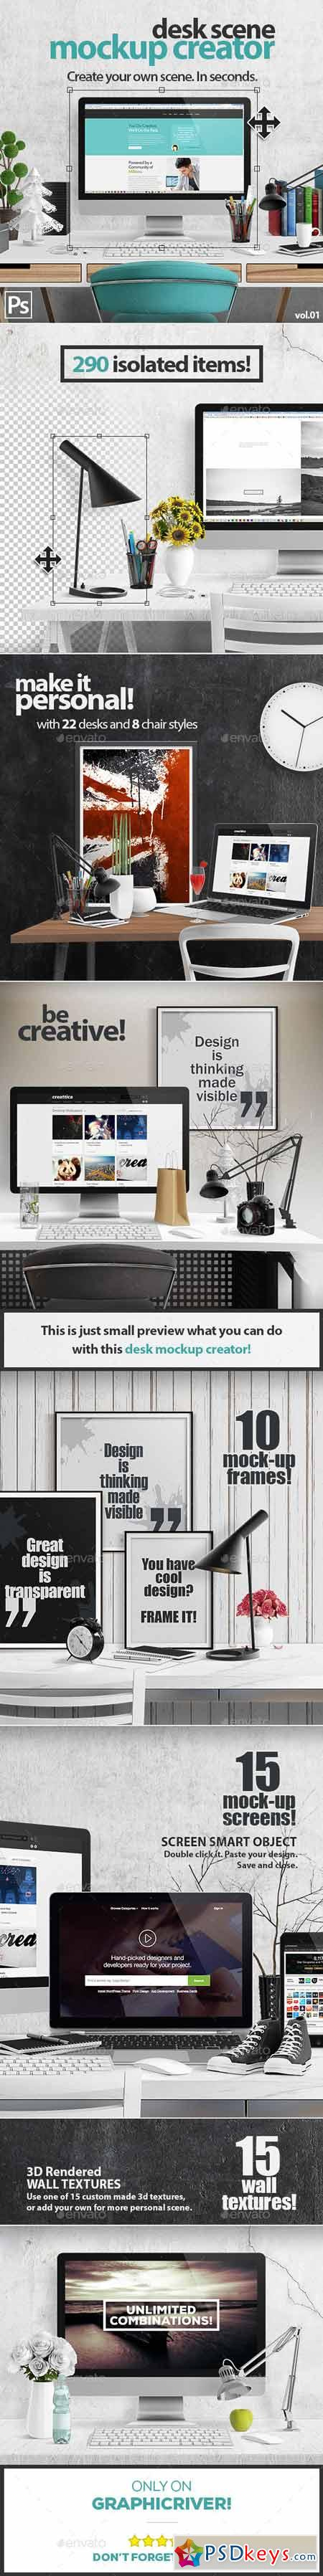 Desk Scene Mock-Up Creator 12948098